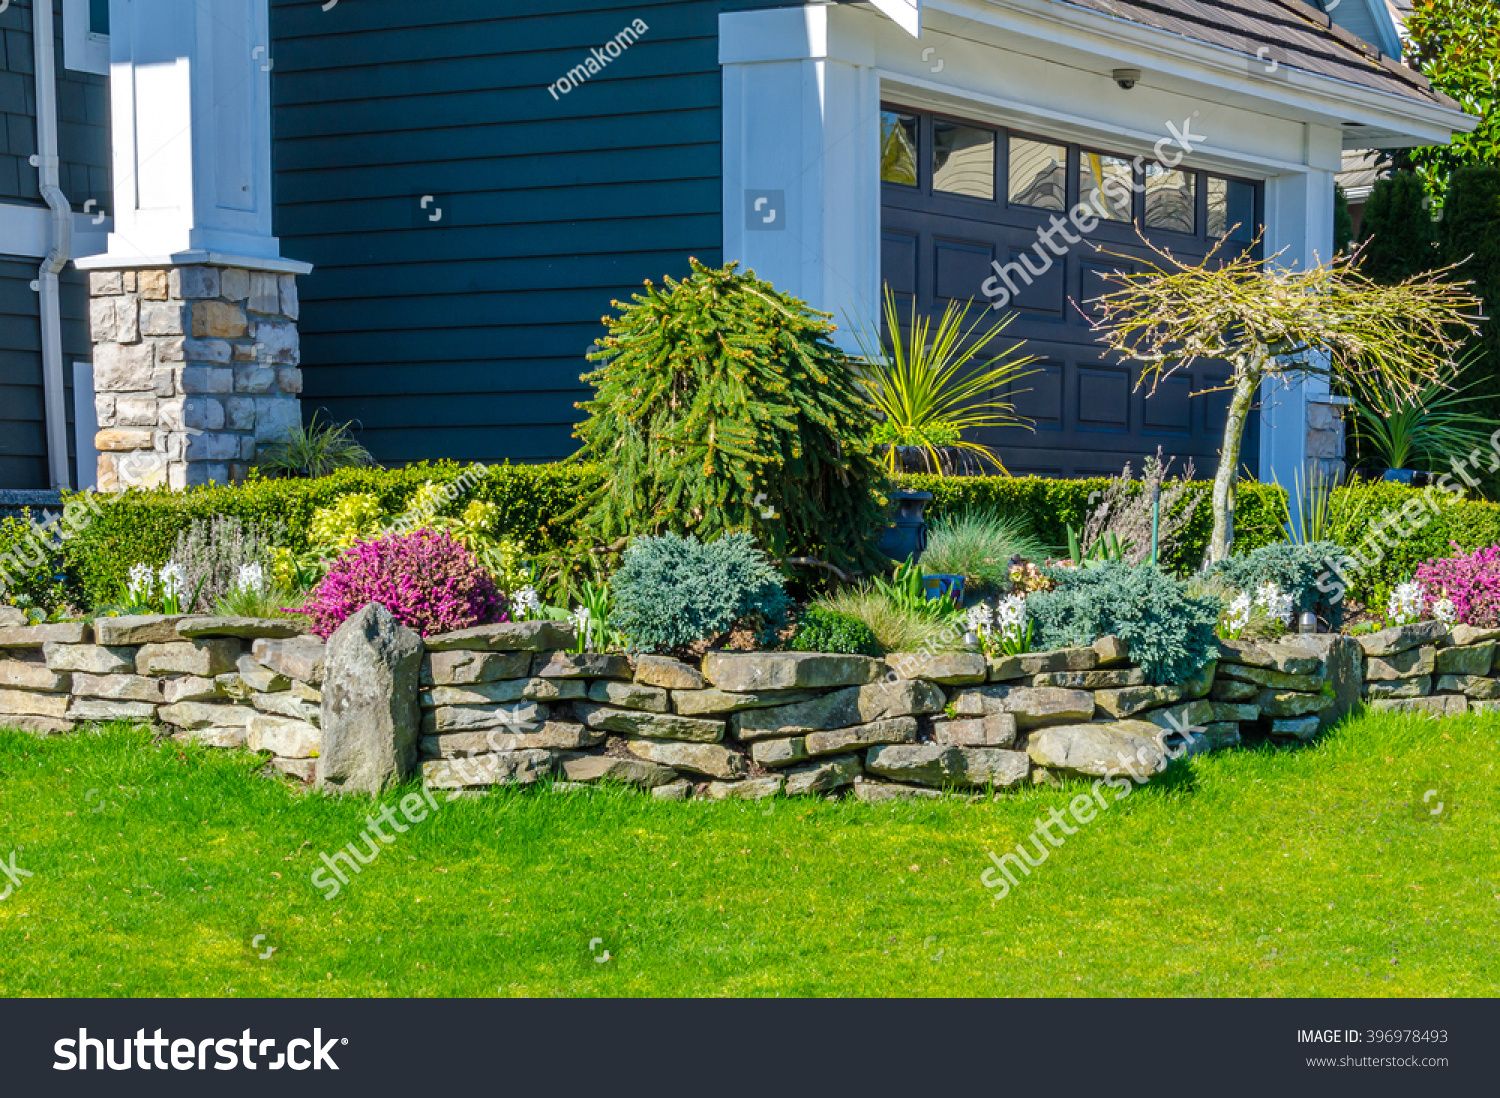 Nicely Trimmed Bushes Flowers Stones Front Stock Photo Edit Now 396978493